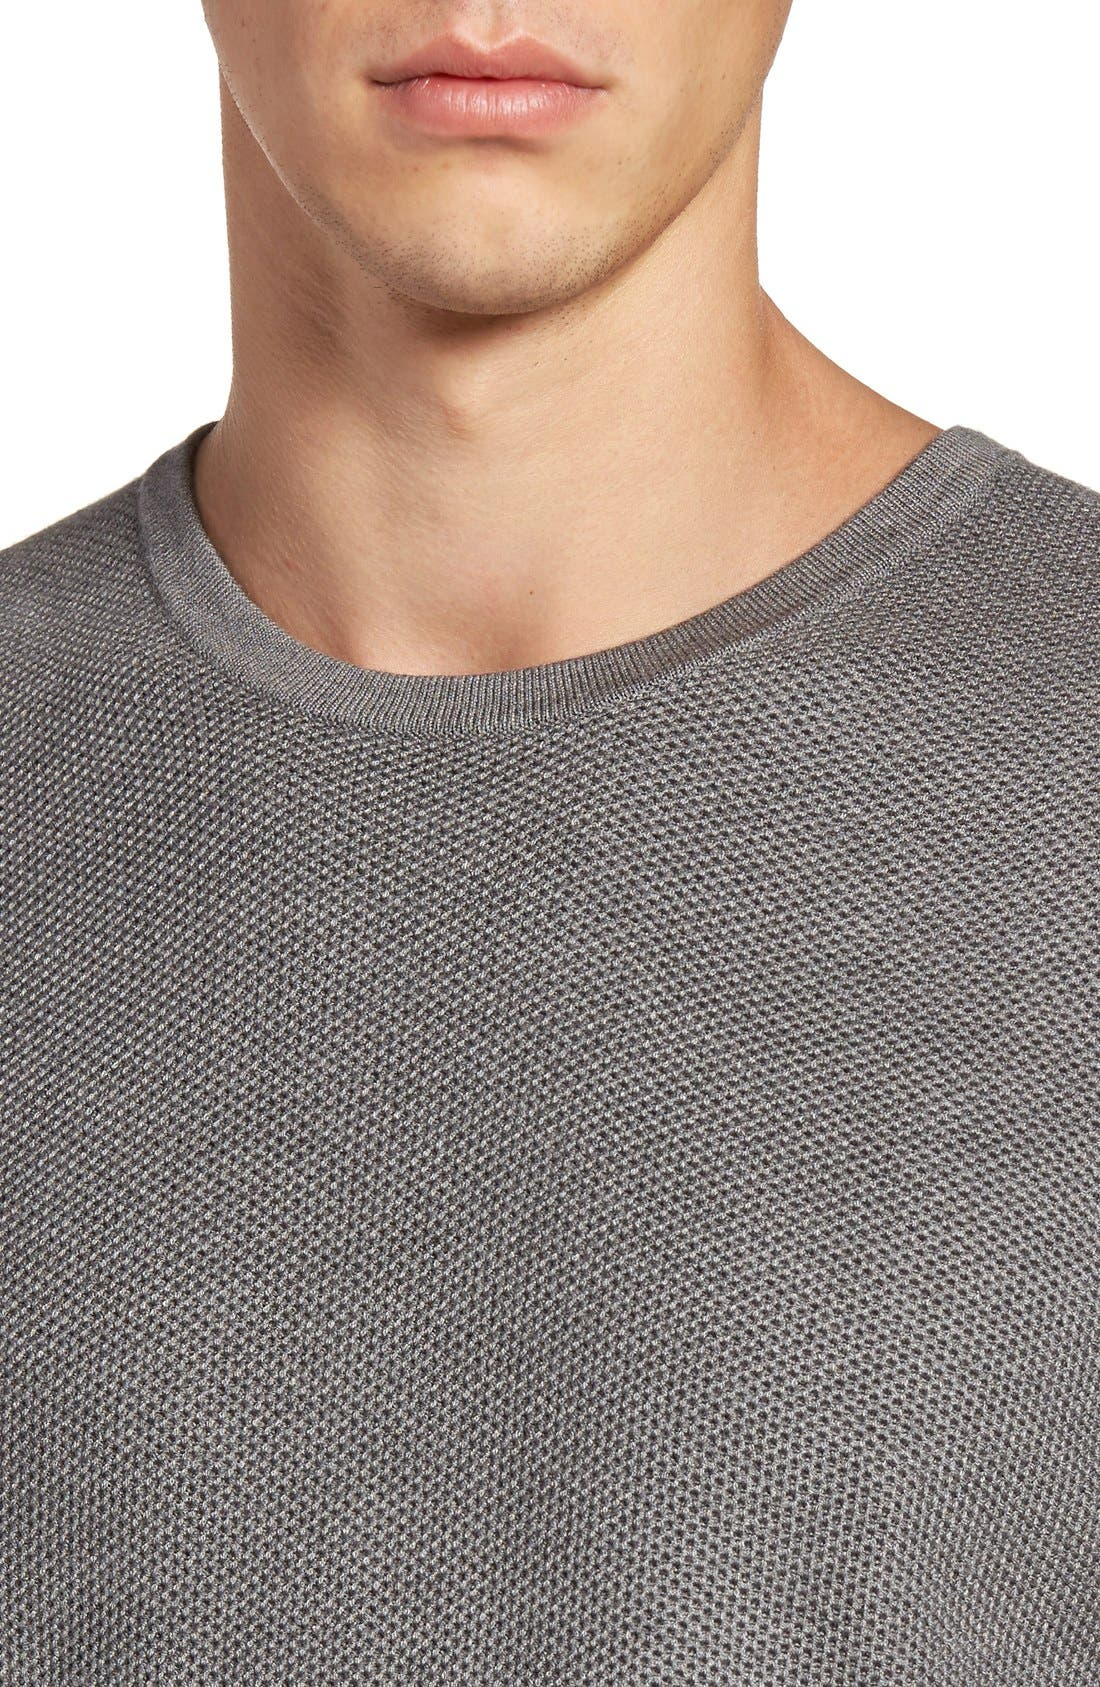 Honeycomb Stitch Crewneck Sweater,                             Alternate thumbnail 4, color,                             Grey Cloudy Heather